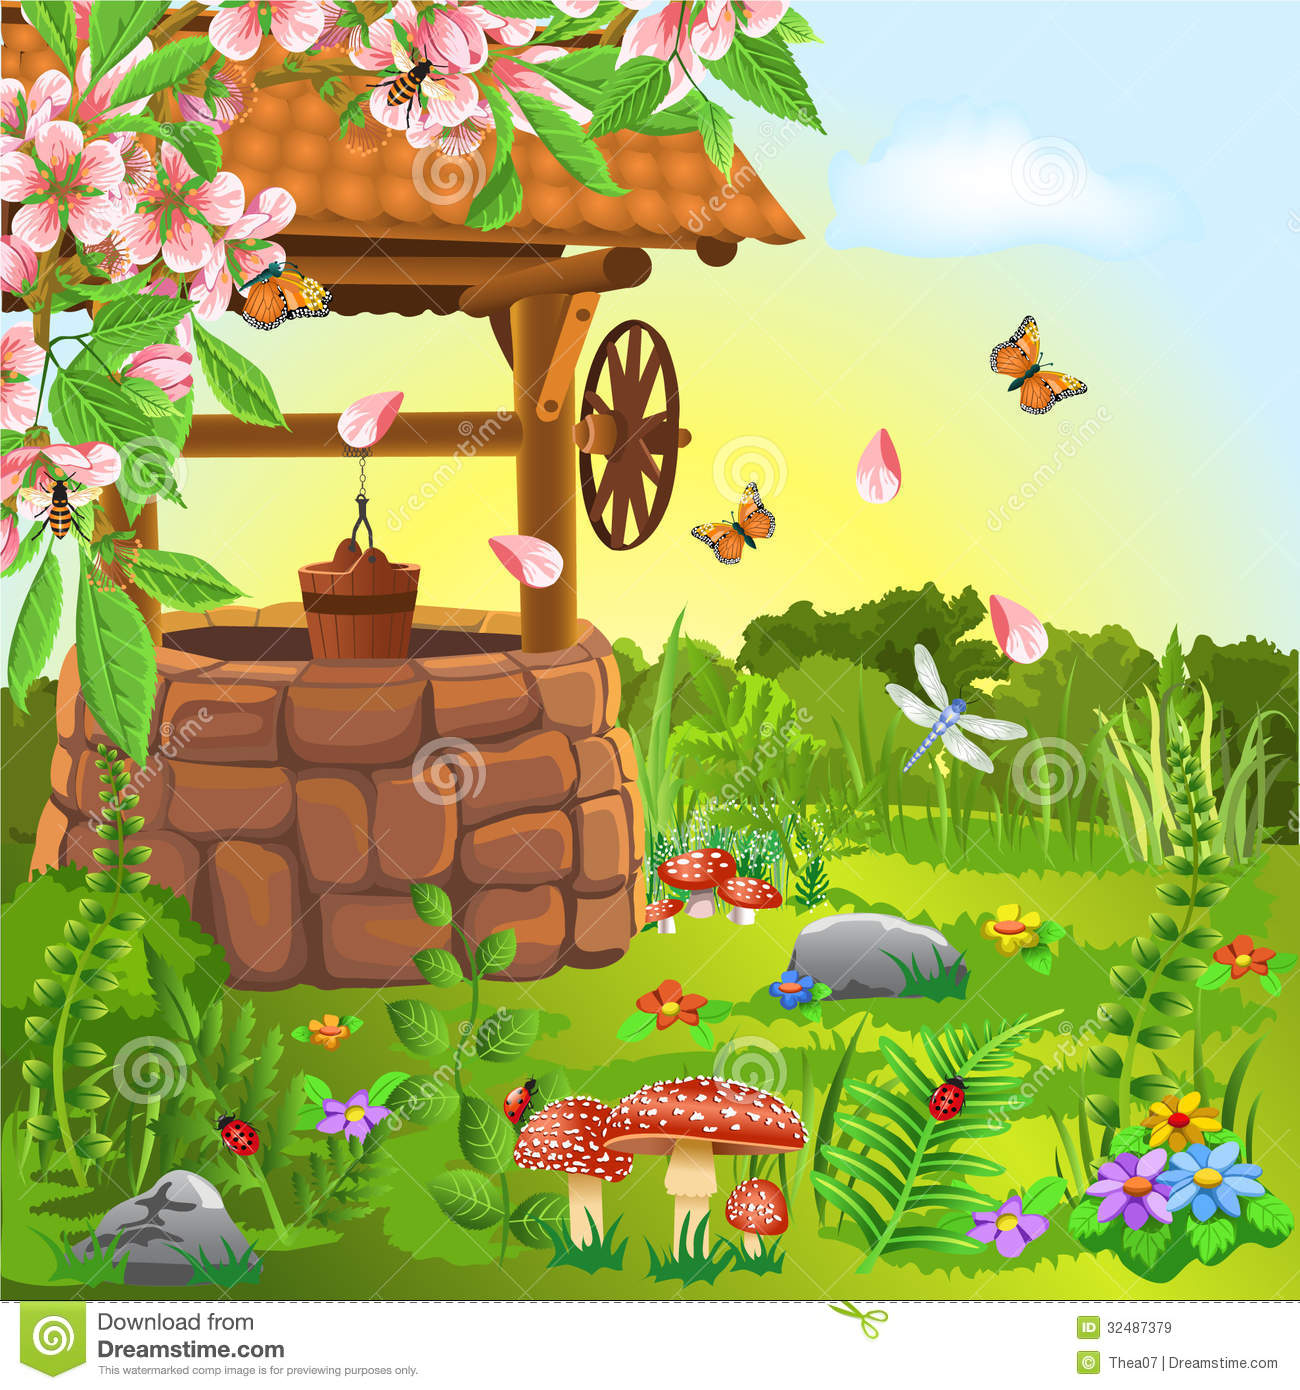 Spring season pictures clipart